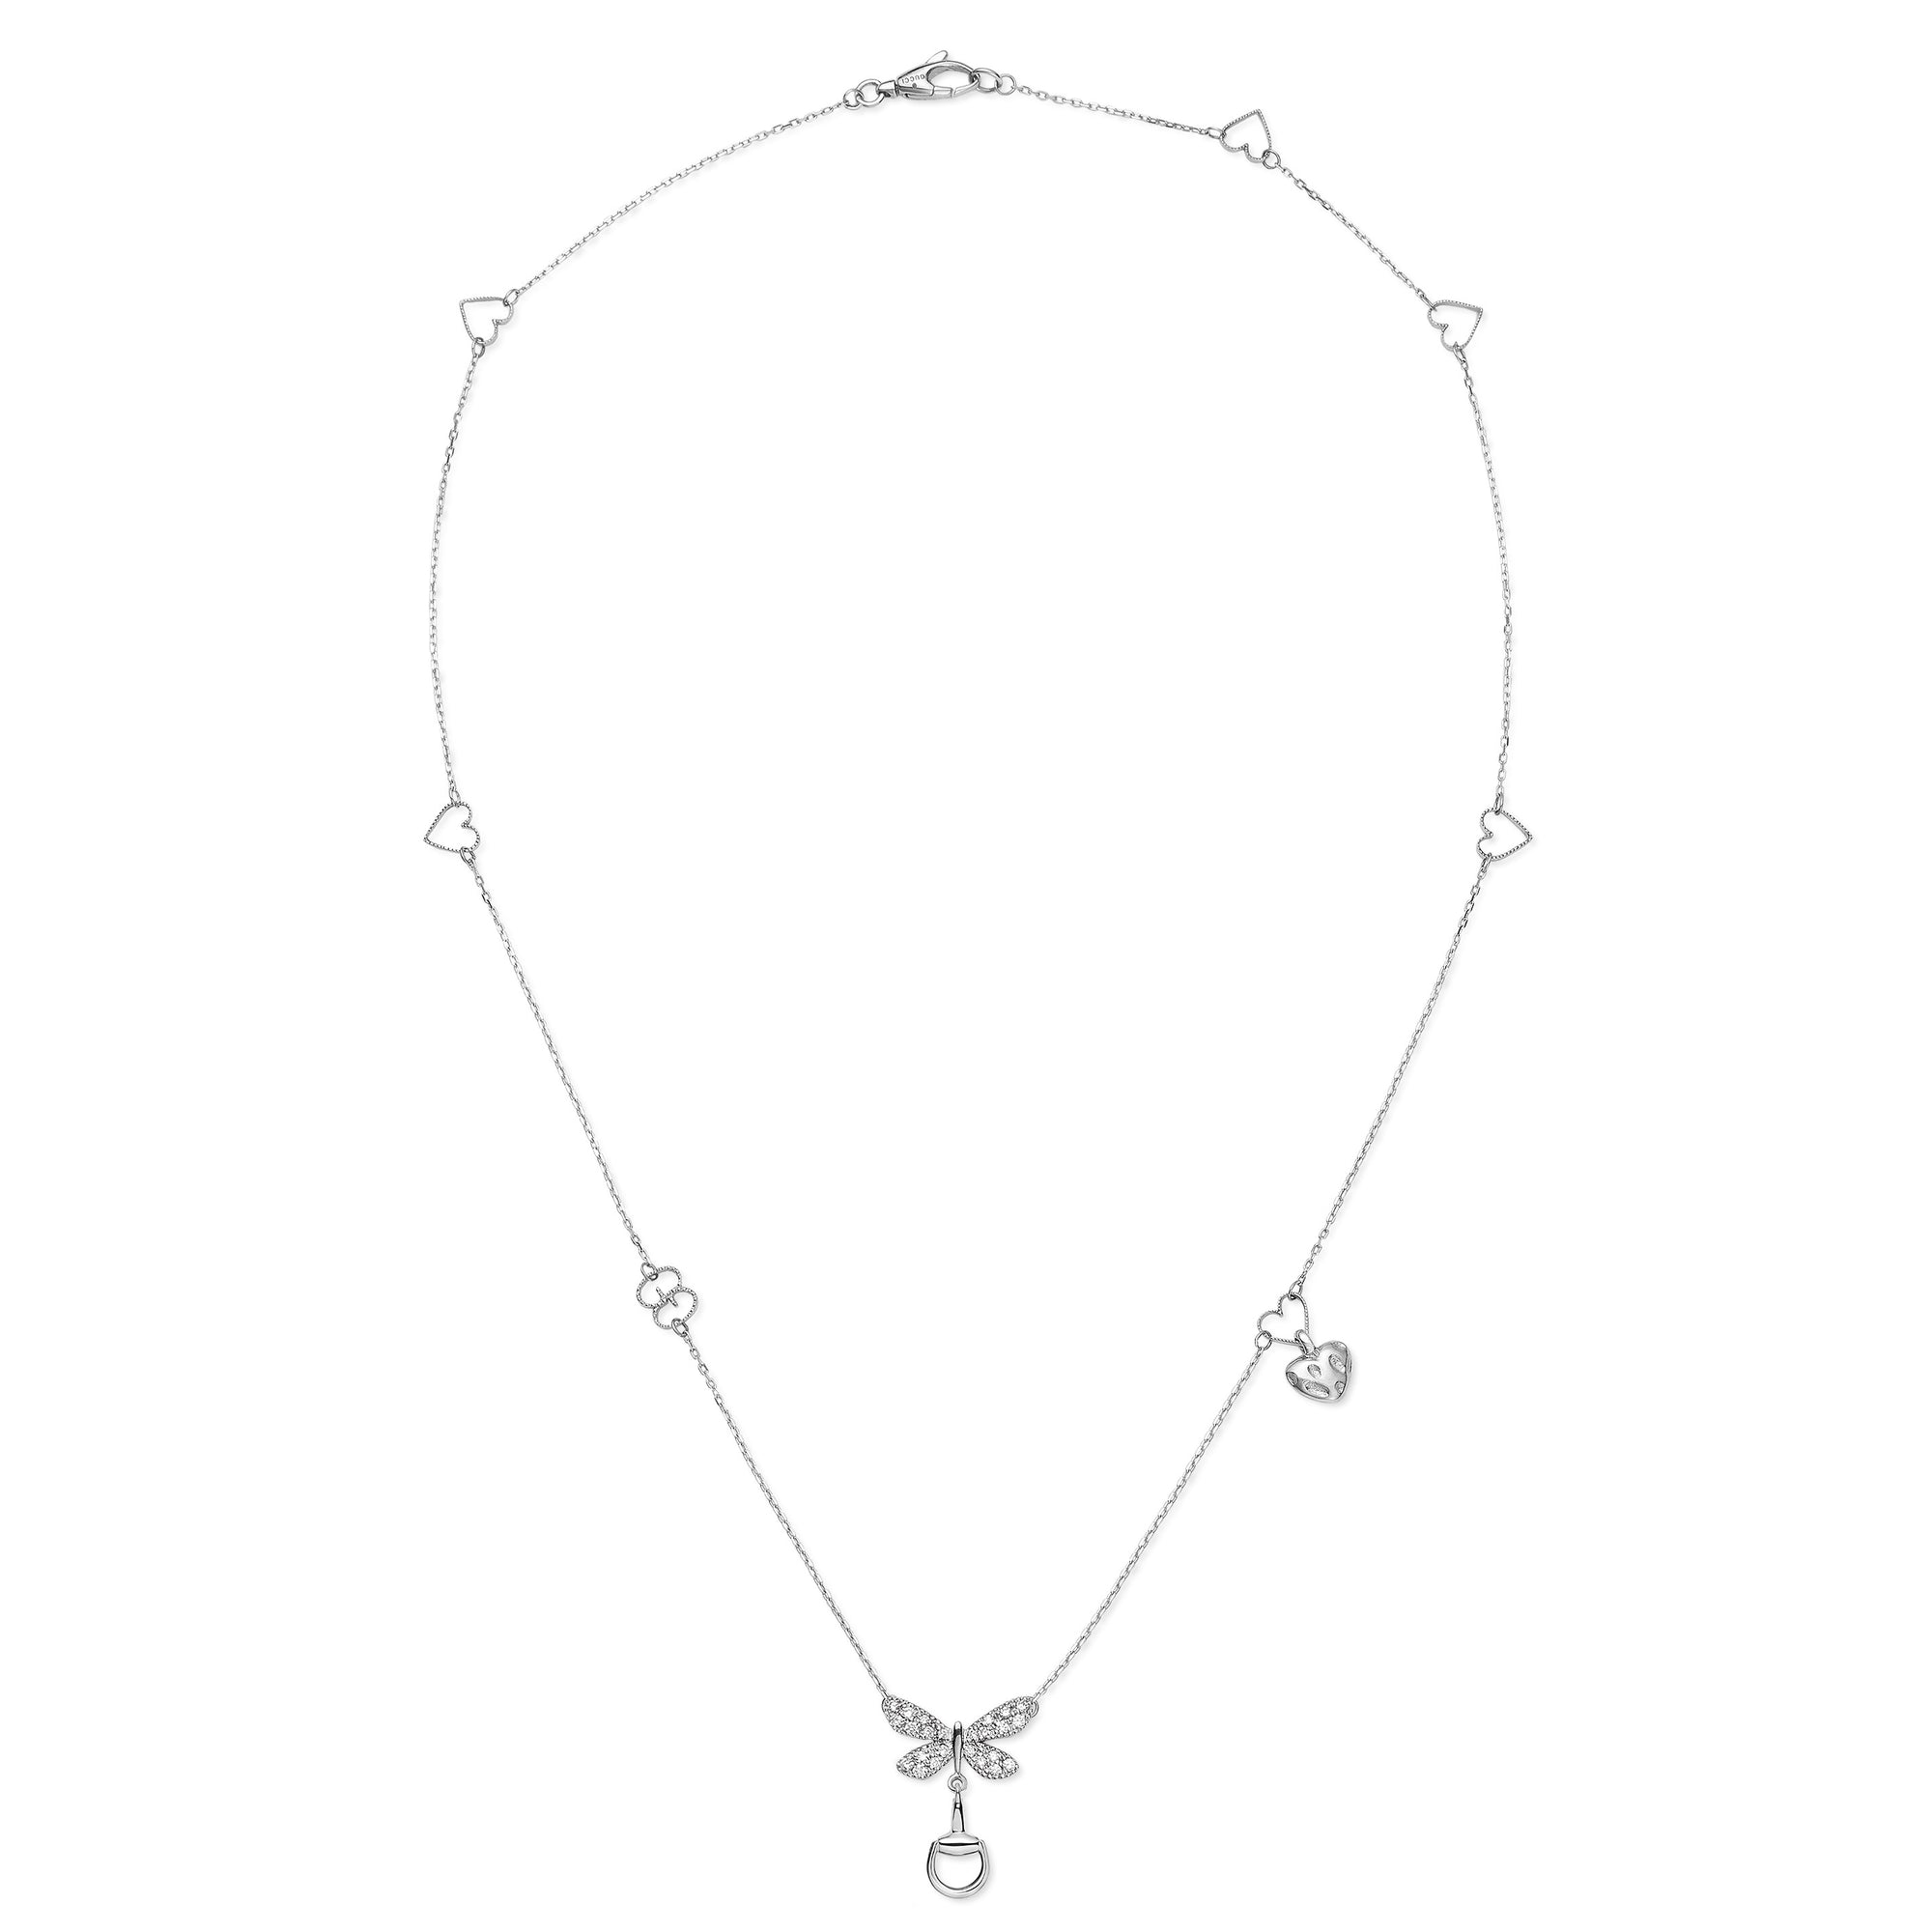 Gucci Flora Necklace in 18kt White Gold with Diamonds - Orsini Jewellers NZ